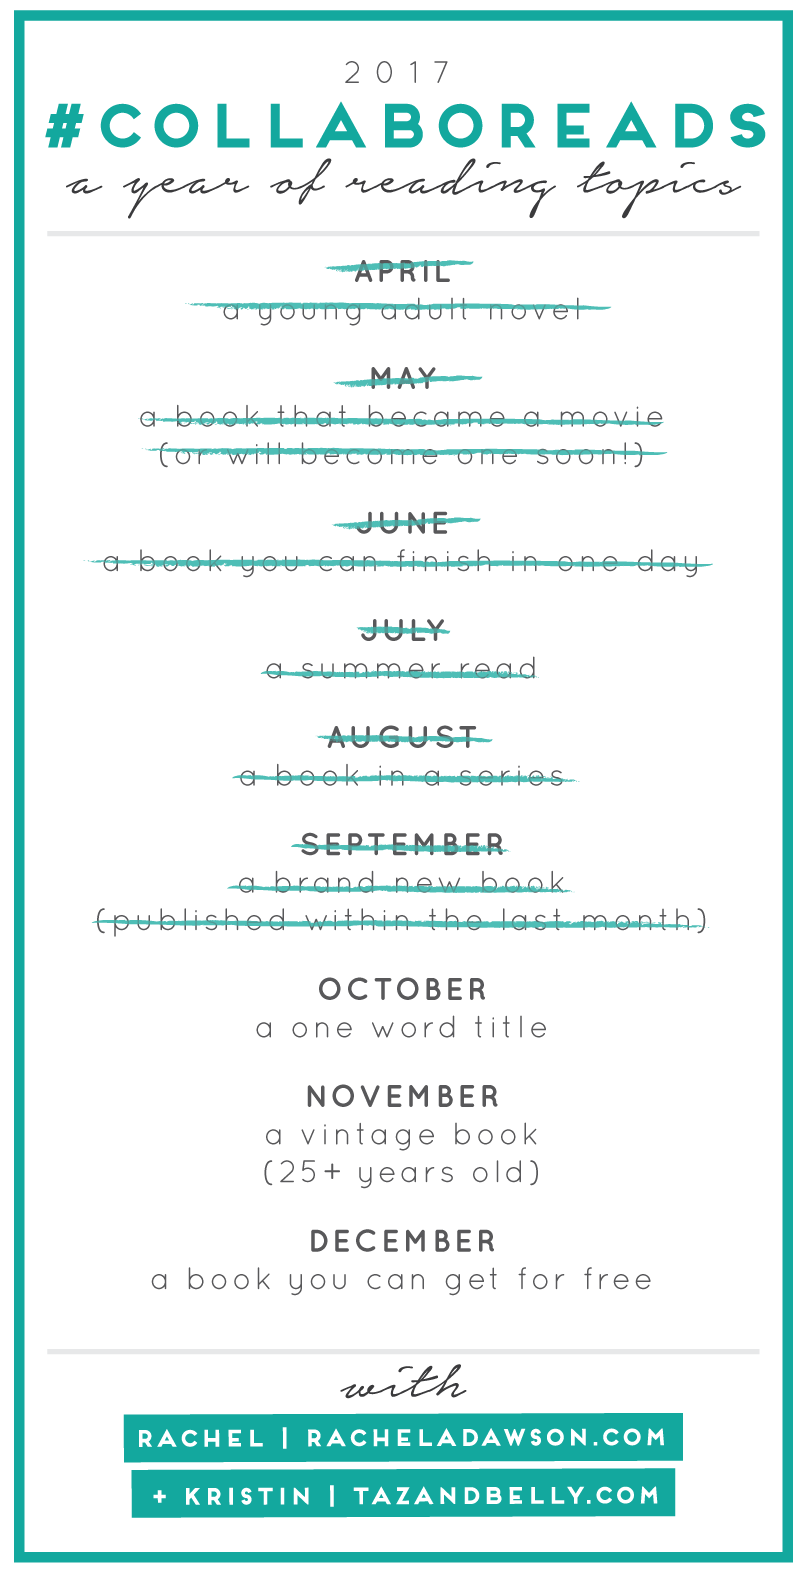 September_Collaboreads_Reading_Topics-2.png